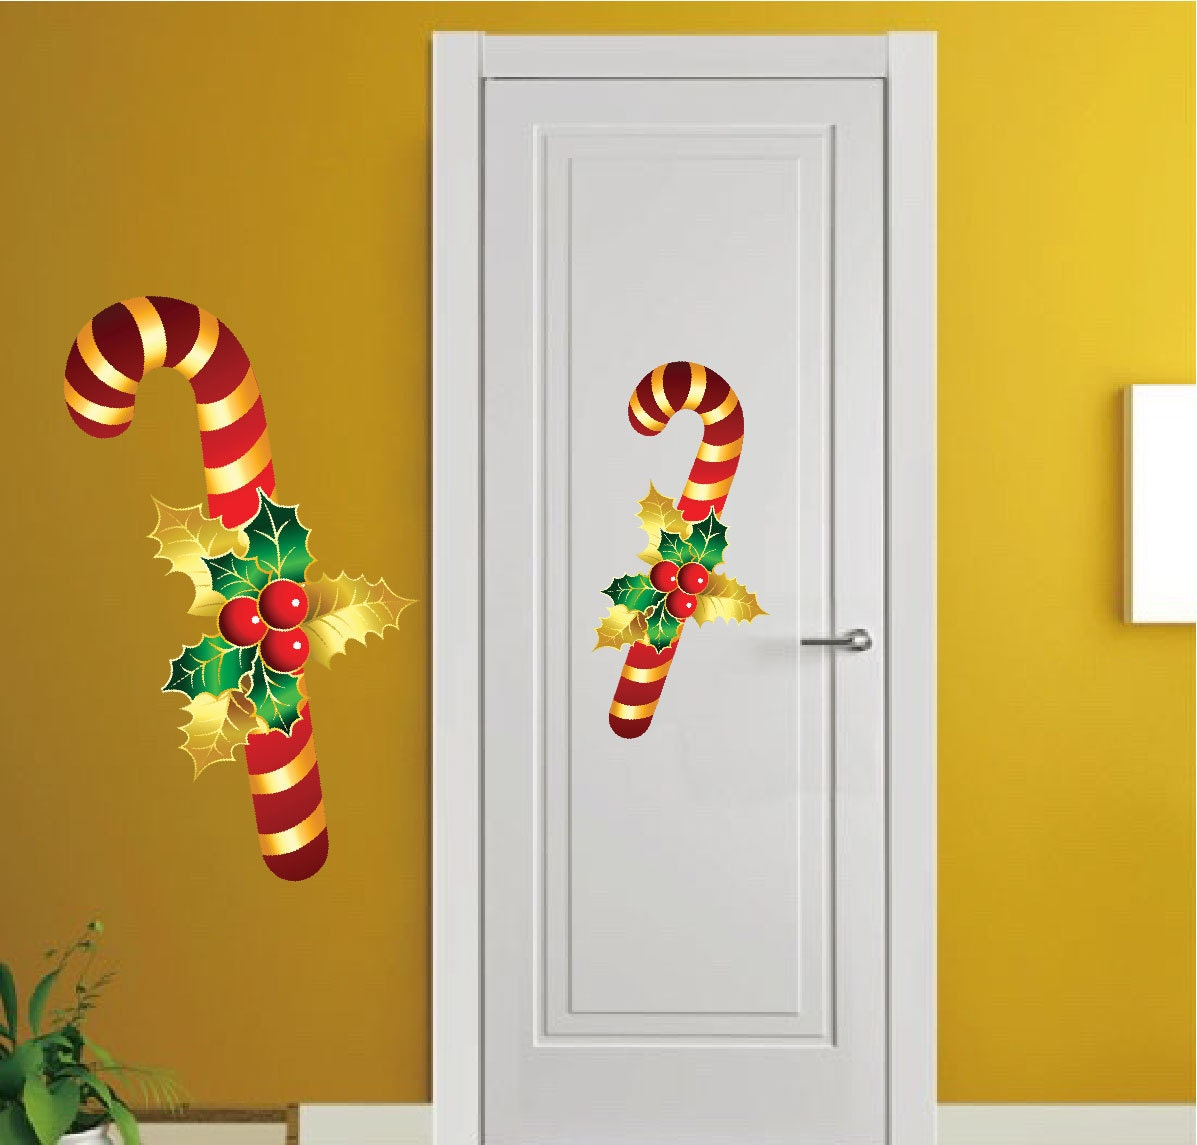 Candy cane decal candy cane wall decals candy mural for Candy wall mural